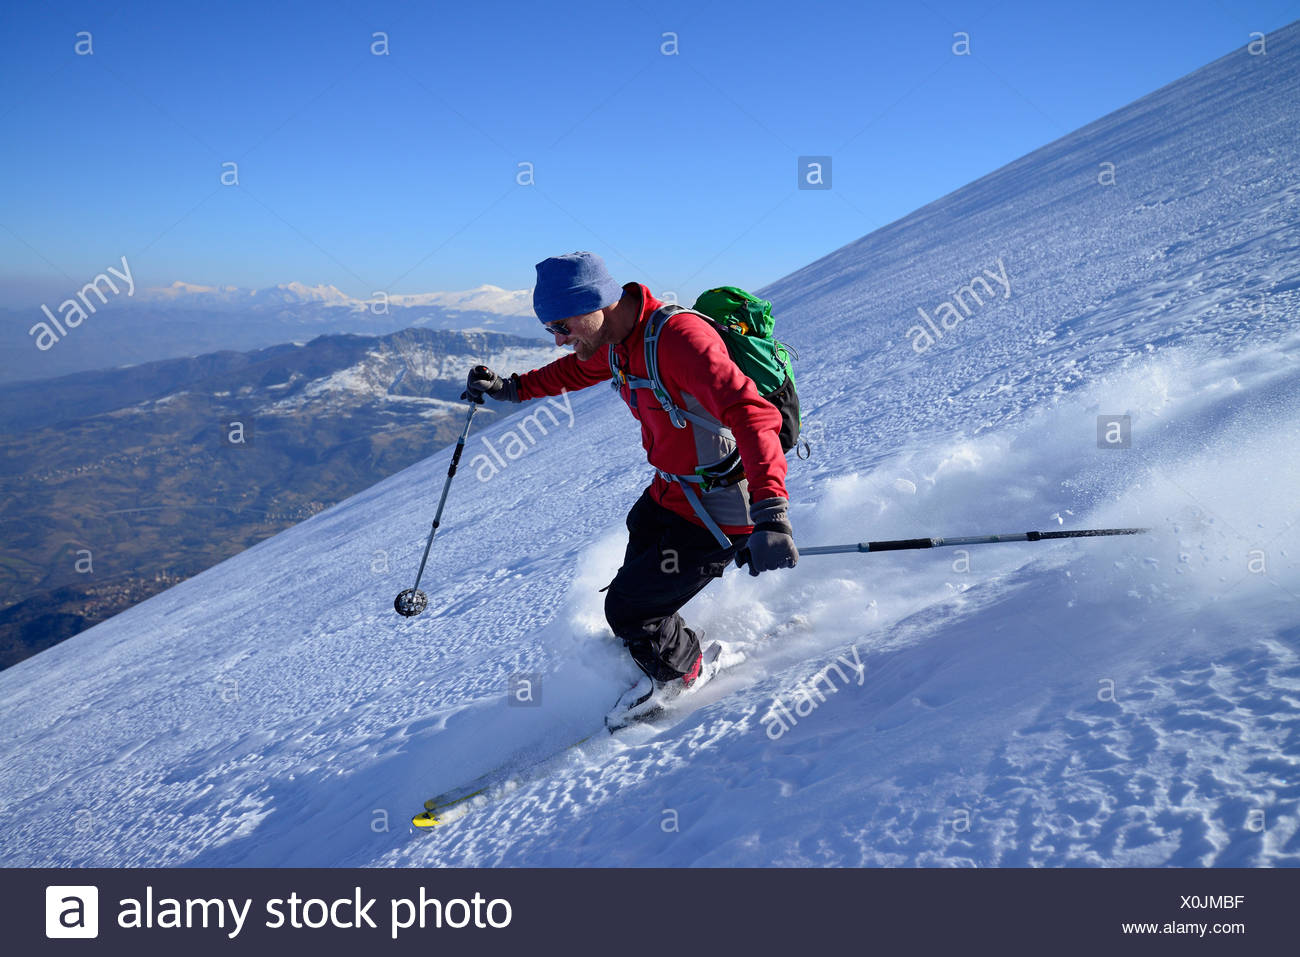 Backcountry skier downhill skiing, Monte Prena, Gran Sasso, Abruzzo, Italy - Stock Image